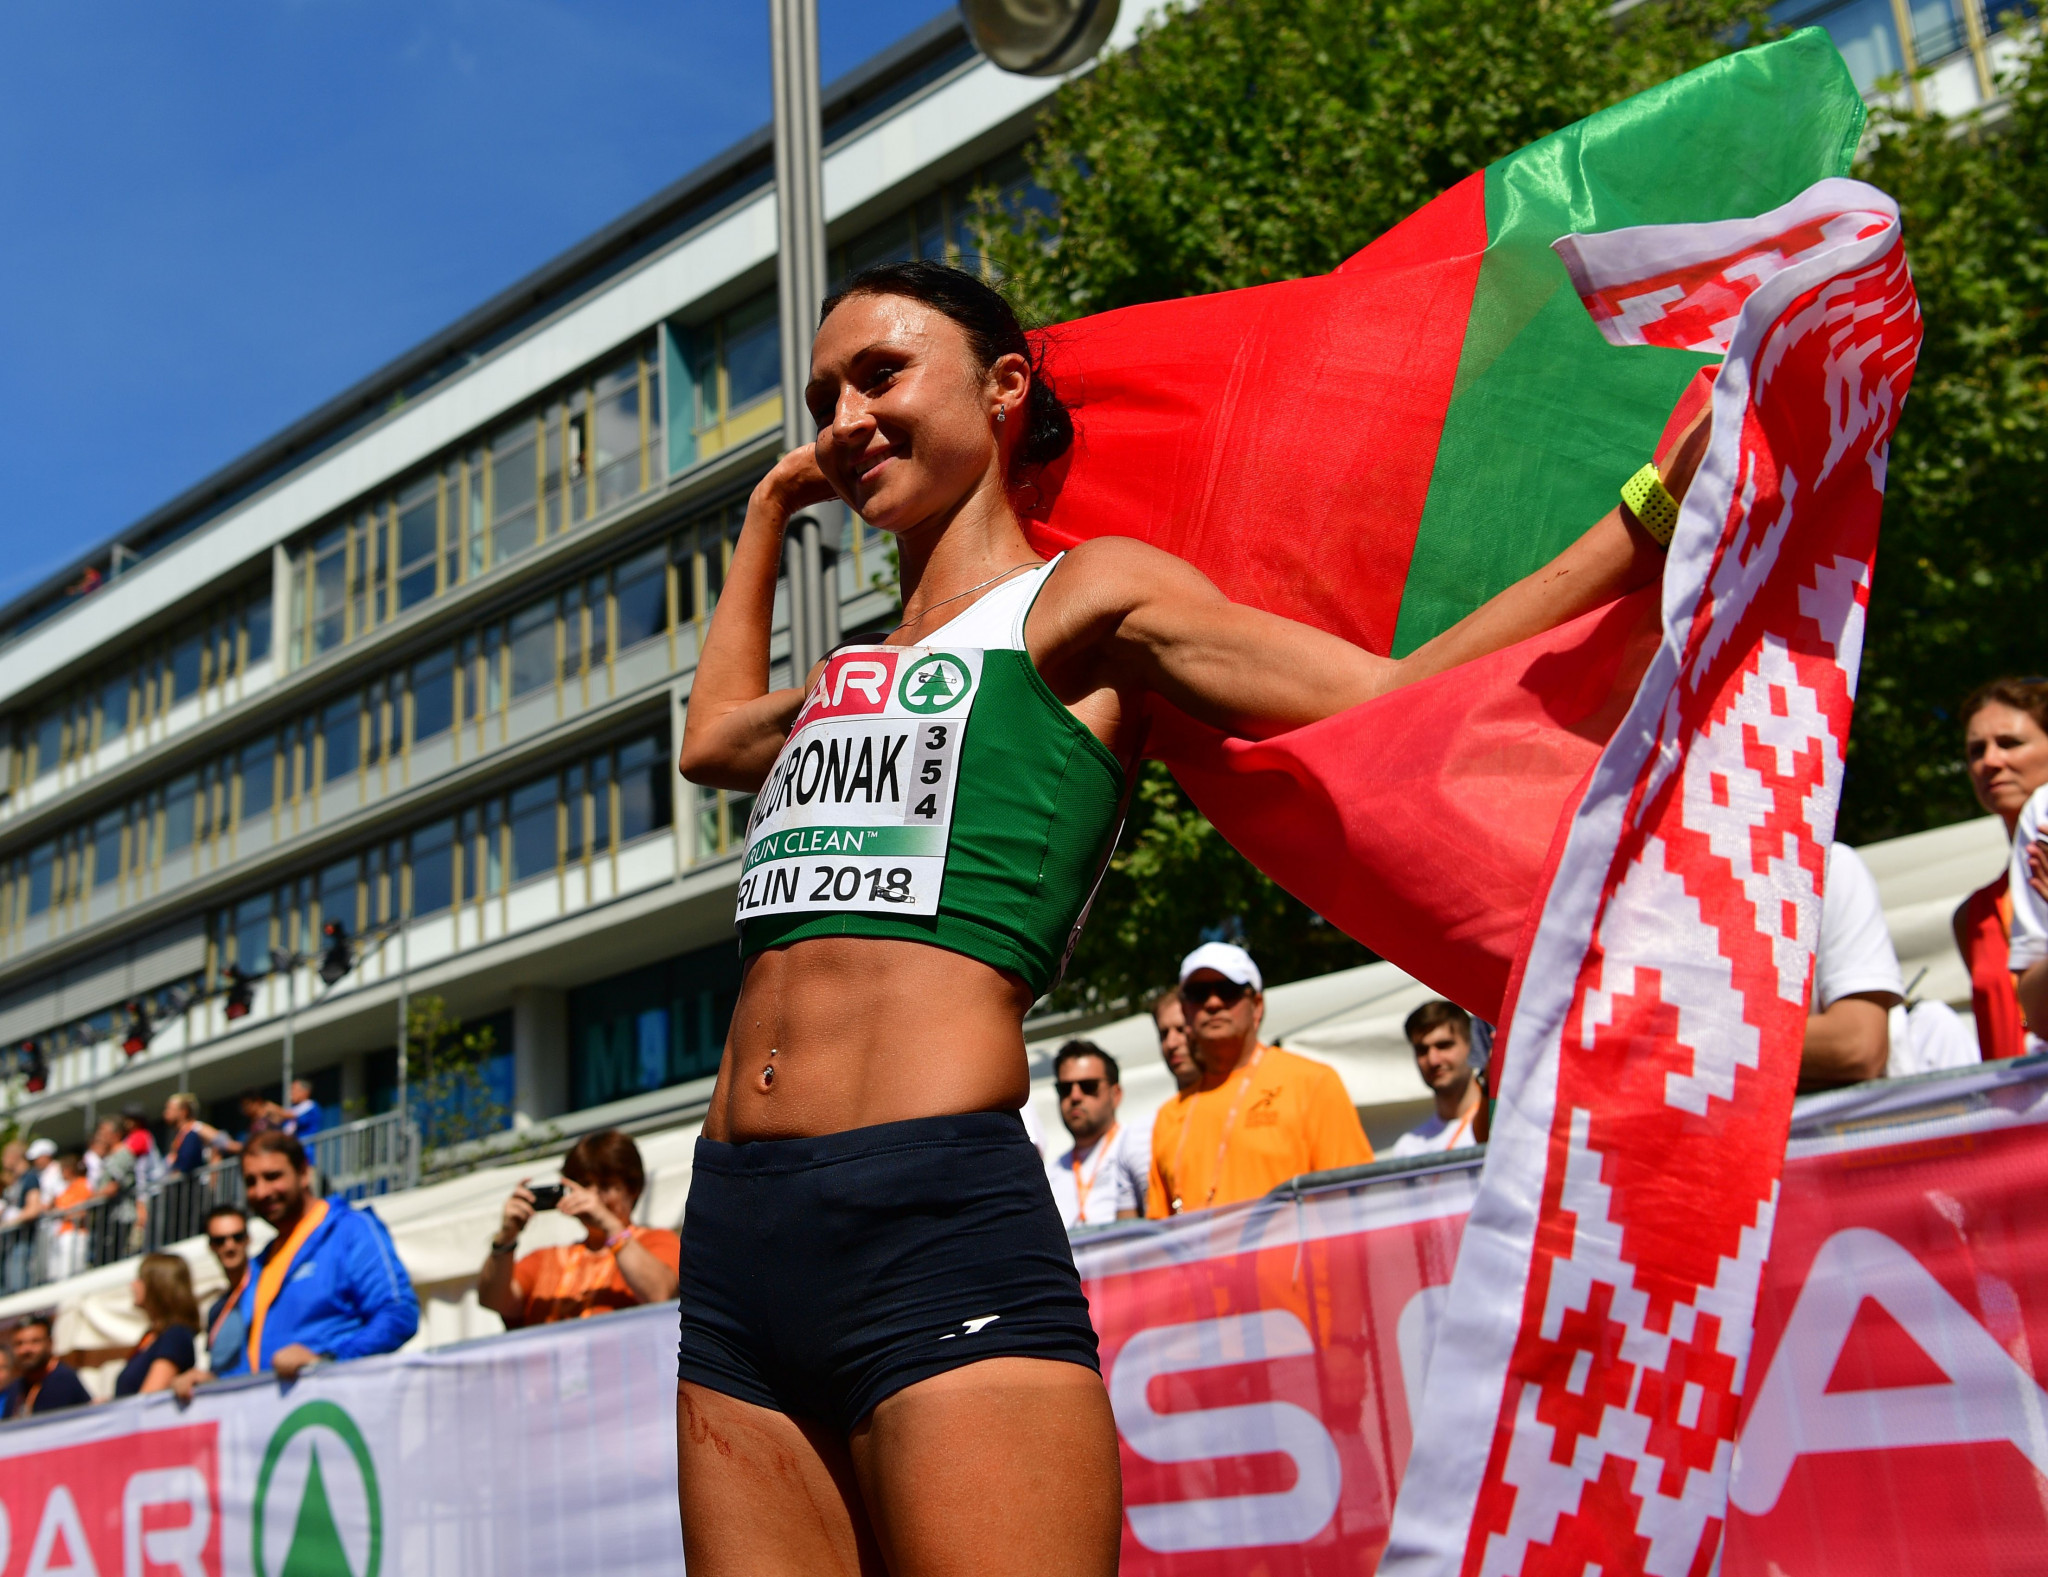 Minsk is preparing for the biggest sporting event in the history of Belarus ©Getty Images